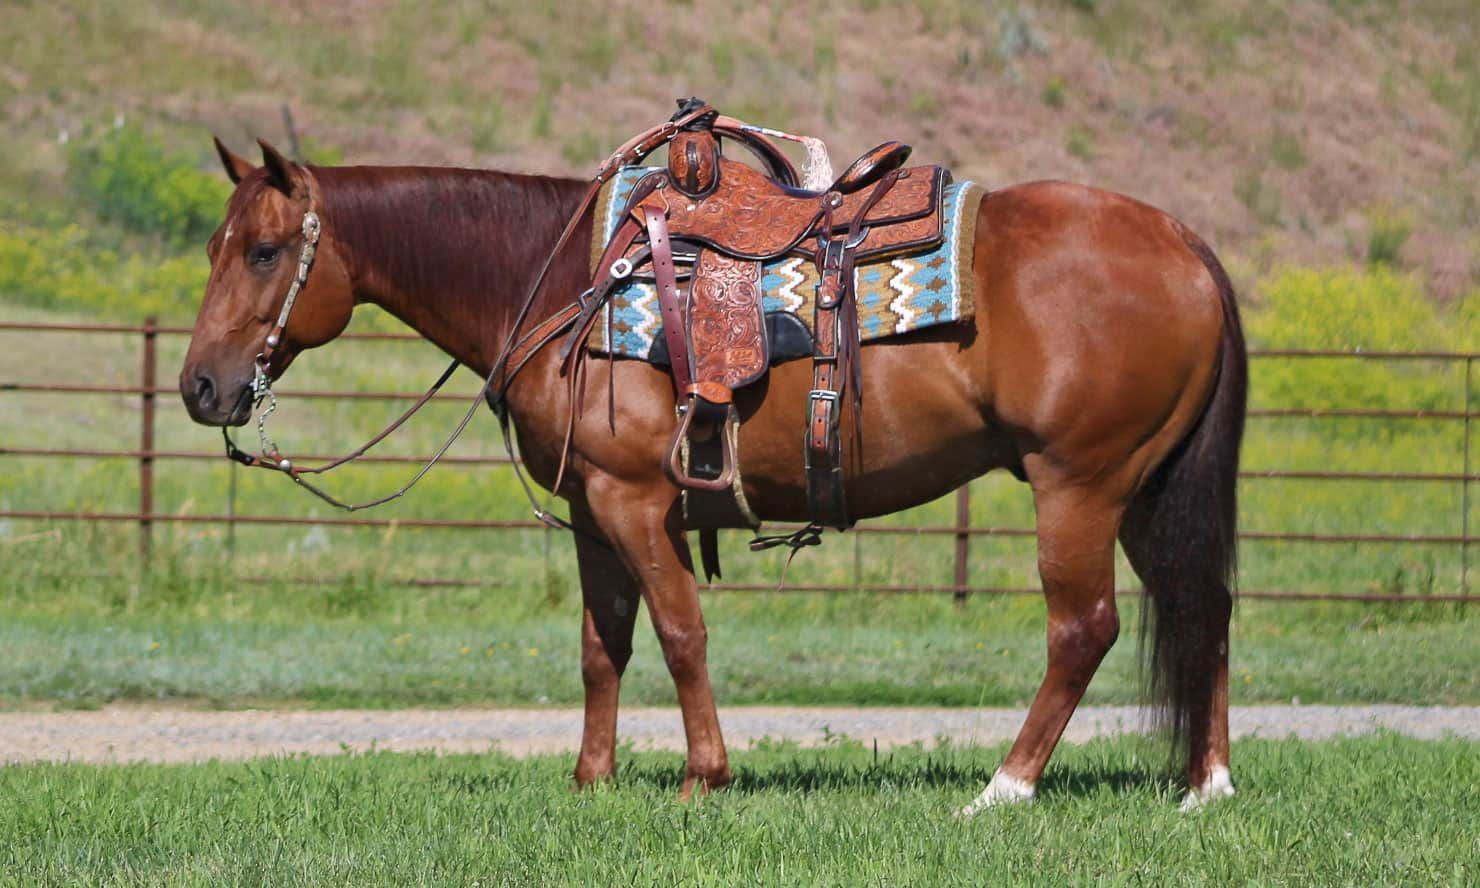 Tuit is one of the horses for sale at the League of Legends Horse Sale.